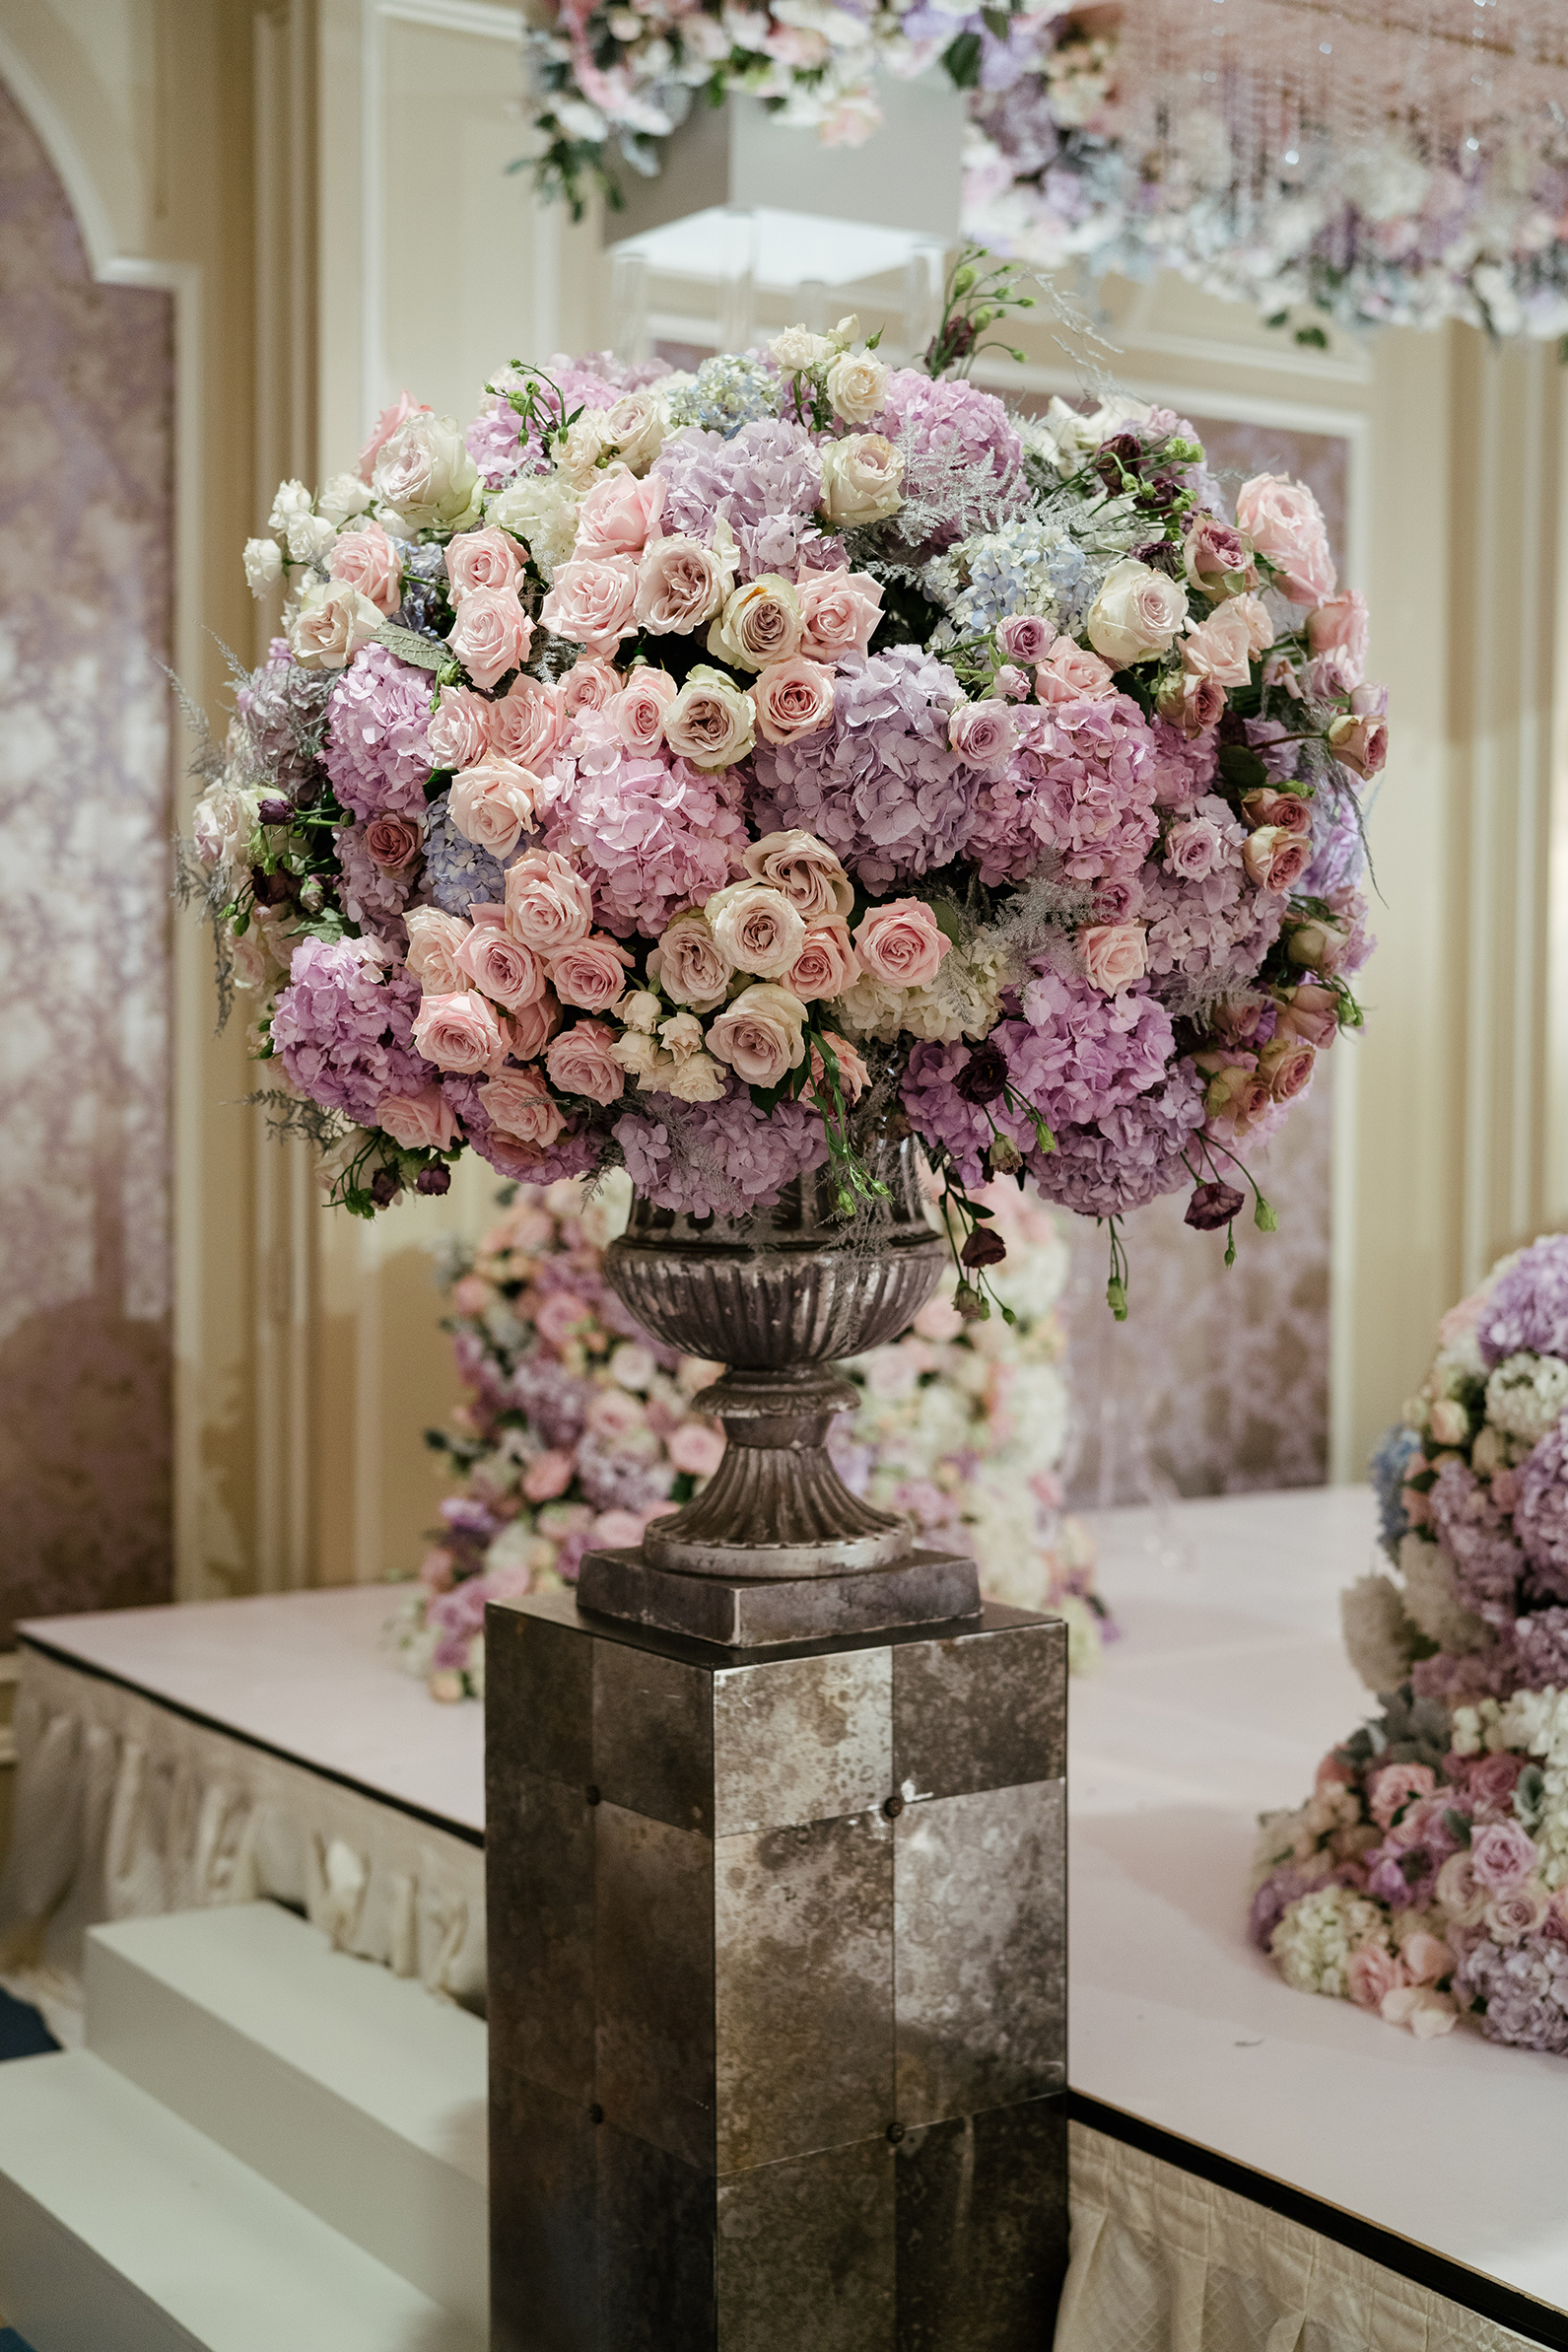 Purple Floral Centerpiece, Pink, Pewter Vase, Todd Events, Hotel Wedding